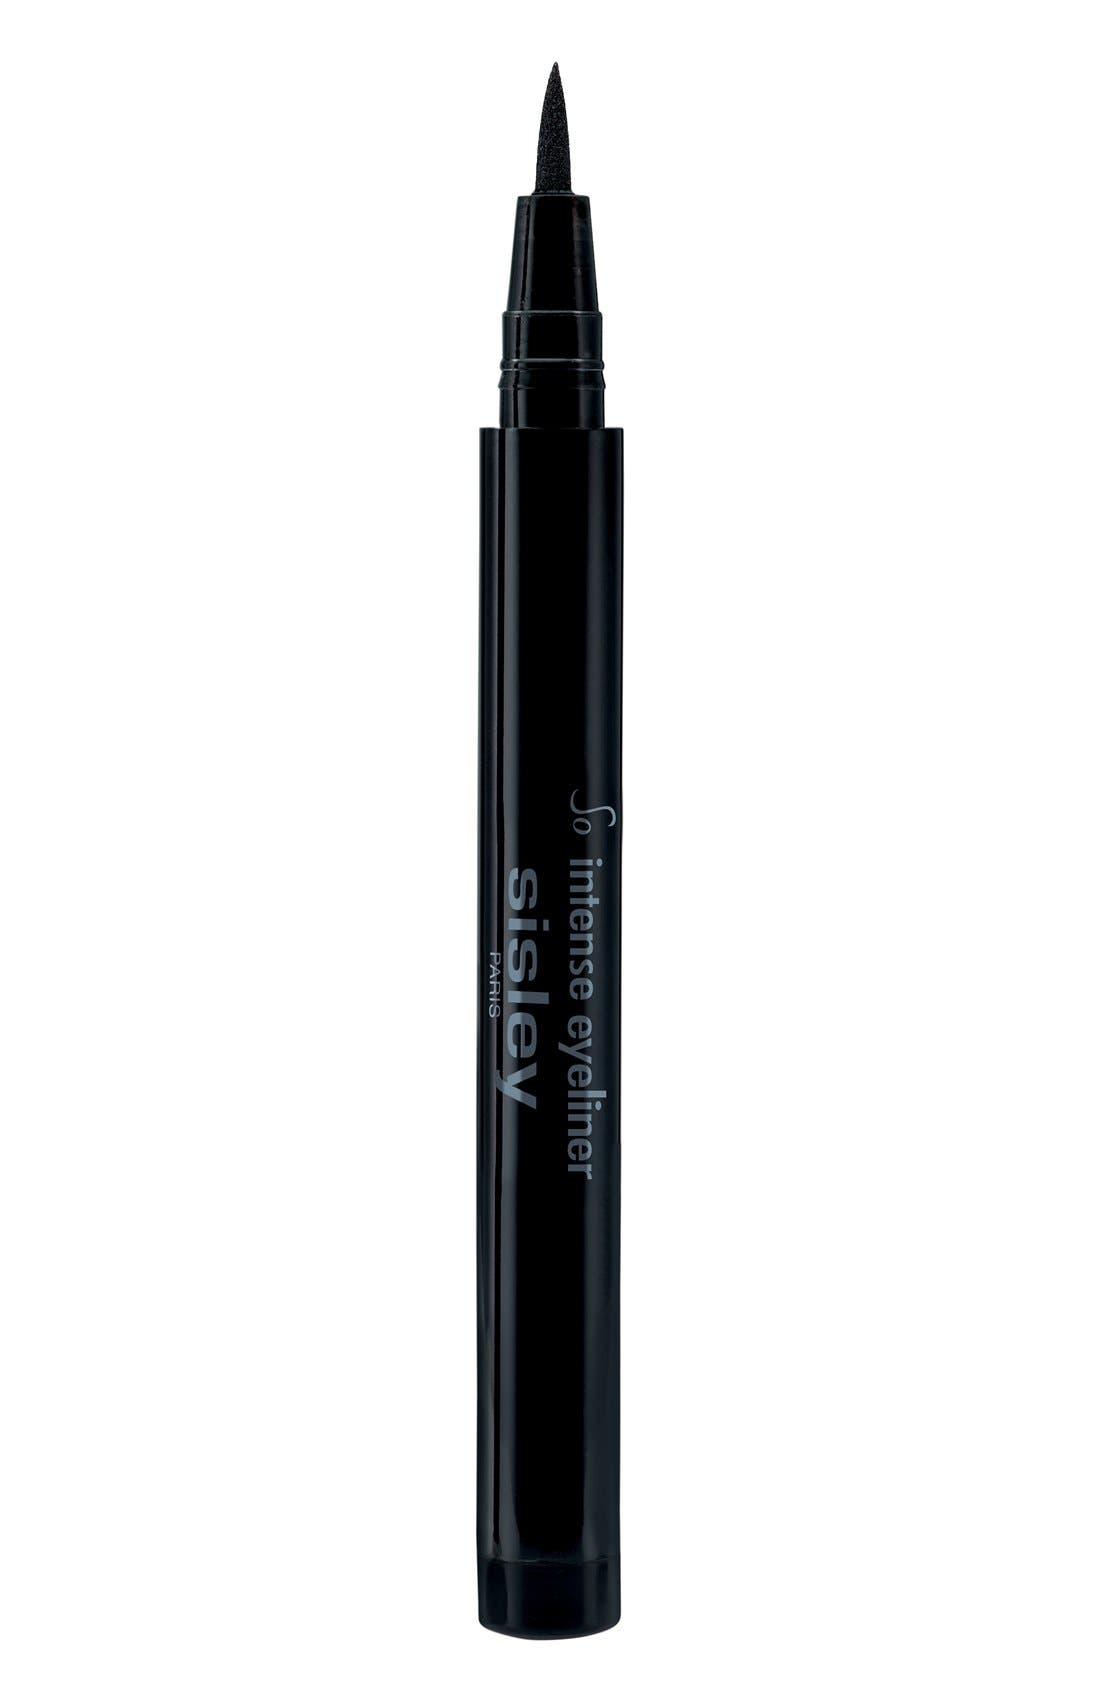 Sisley Paris 'So Intense' Eyeliner